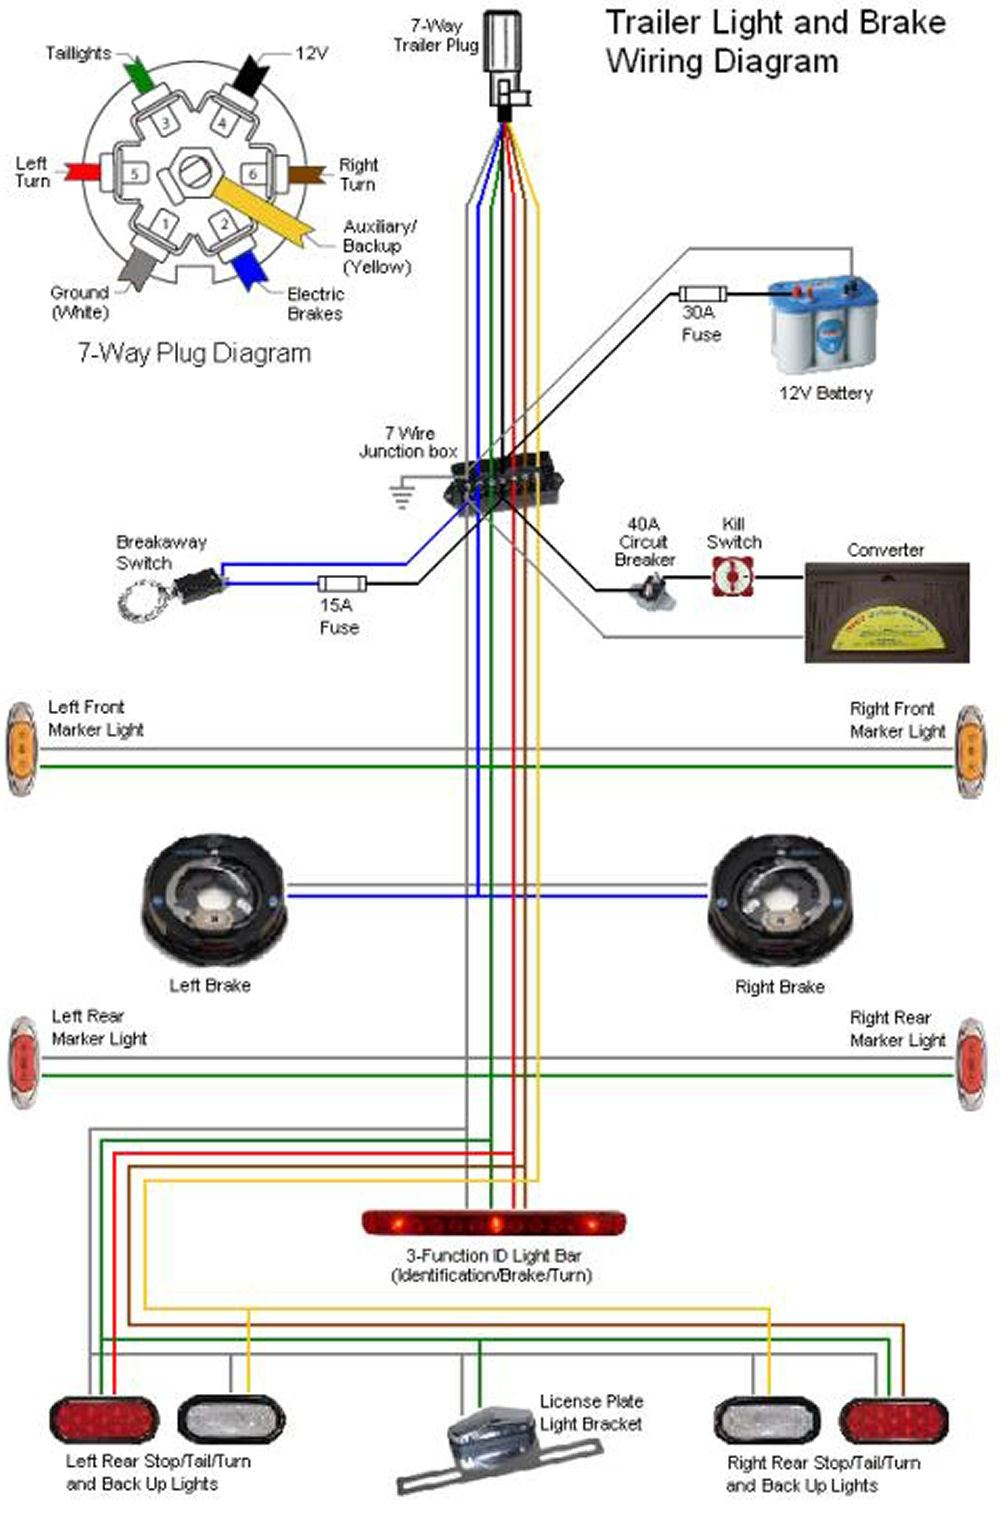 7 Pin Trailer Light Wiring Diagram With Brakes | Wiring Diagram - Wiring Diagram For 7 Way Trailer